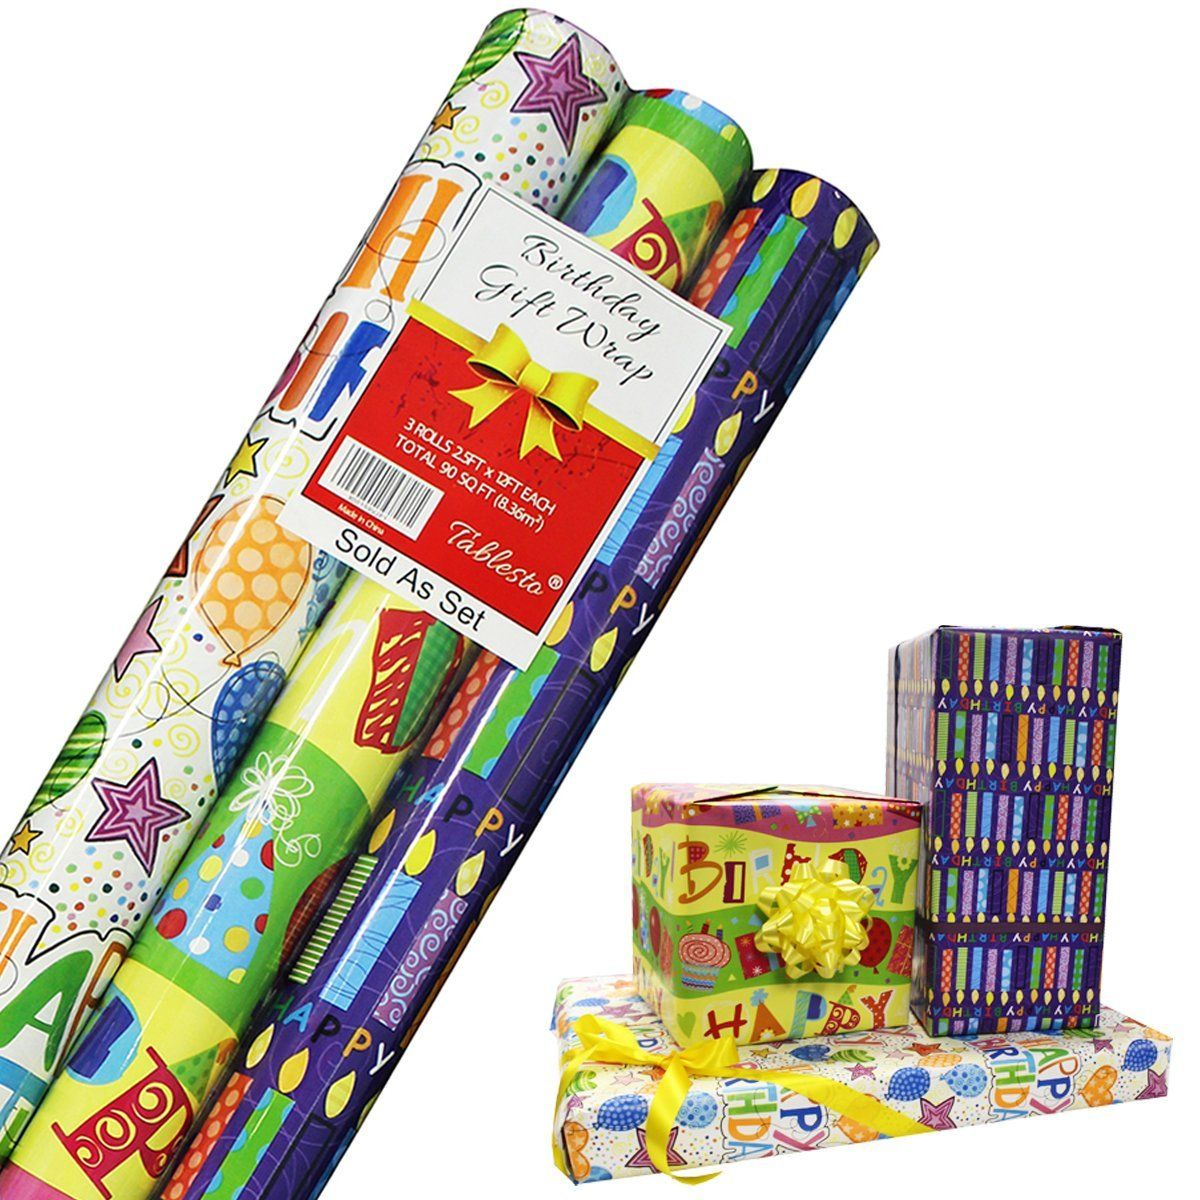 Birthday Wrapping Paper Gift Wrap In 3 Bright Styles 2 5 Ft X 12 Ft In Each Roll Birthday Gift Wrapping Birthday Wrapping Paper Happy Birthday Gifts